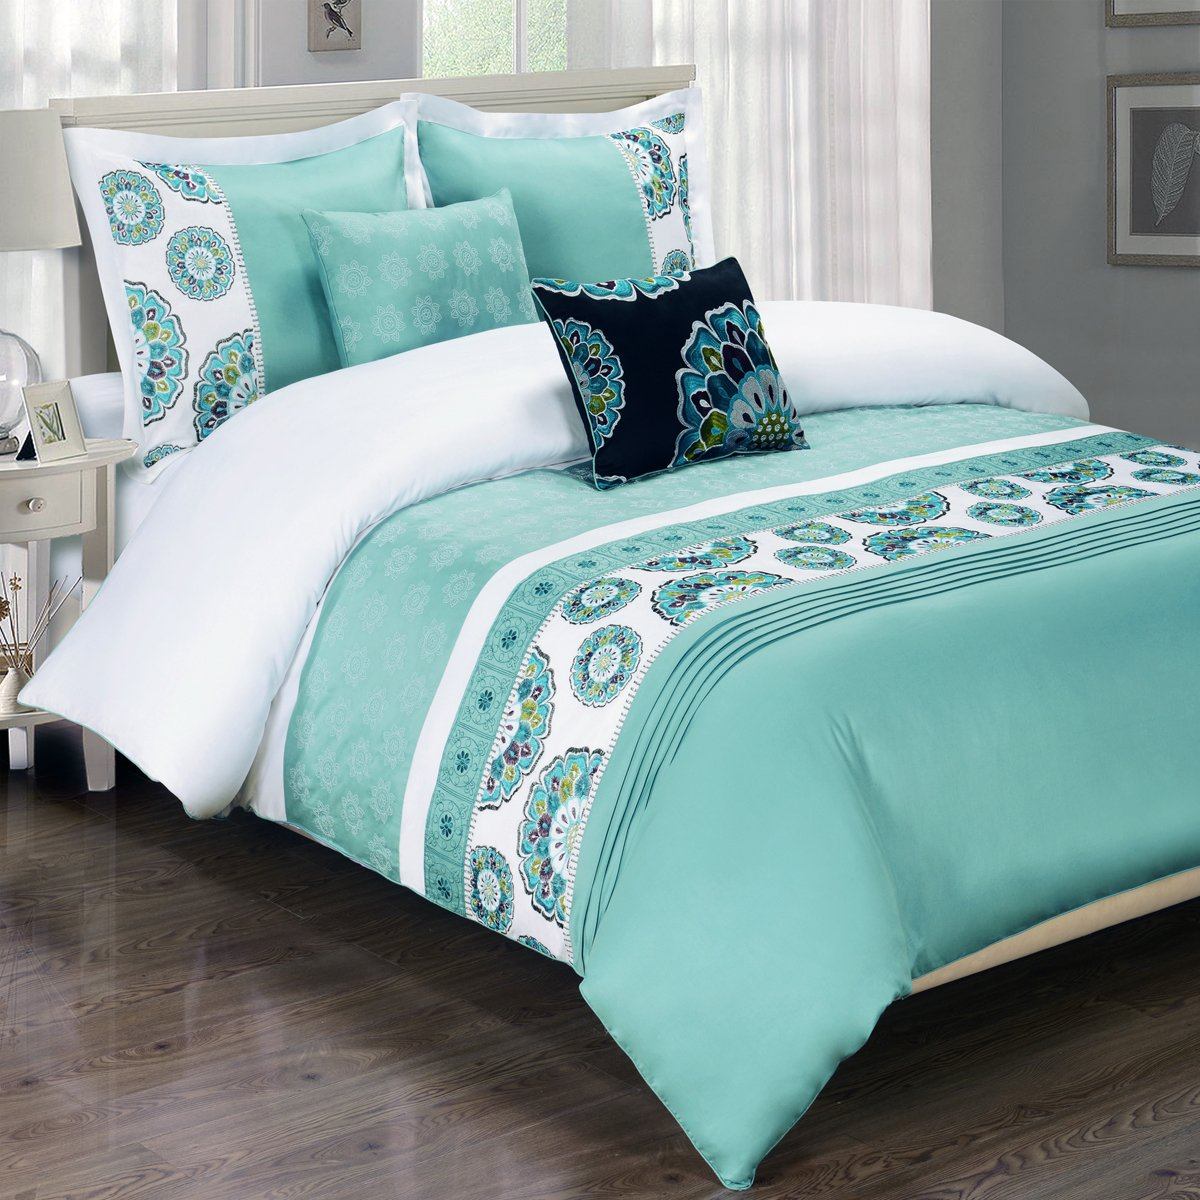 Chelsea Embroidered Duvet Cover Set, Elegant and Contemporary Floral Duvet Set, 100% Egyptian Cotton, 5PC Decorative Duvet Cover Set, Full/Queen Size, Aqua-Blue